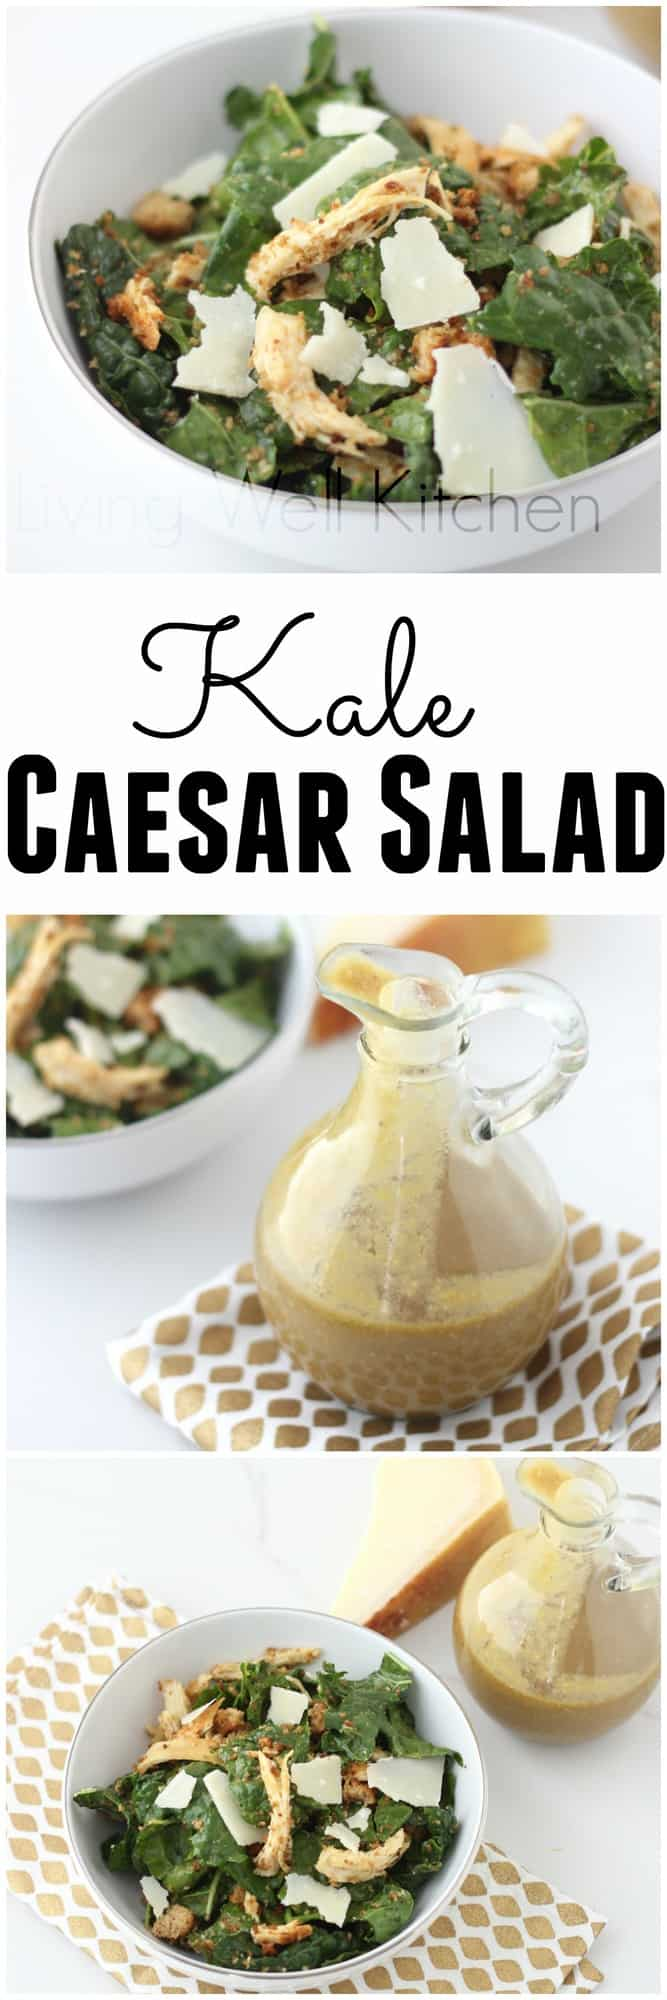 A kale salad so good, you'll think about it in your dreams. This isn't your ordinary boring salad! Kale Caesar Salad recipe from @memeinge made with a rich and creamy Avocado Balsamic Caesar Dressing makes this healthy salad a to-die-for dinner or lunch idea